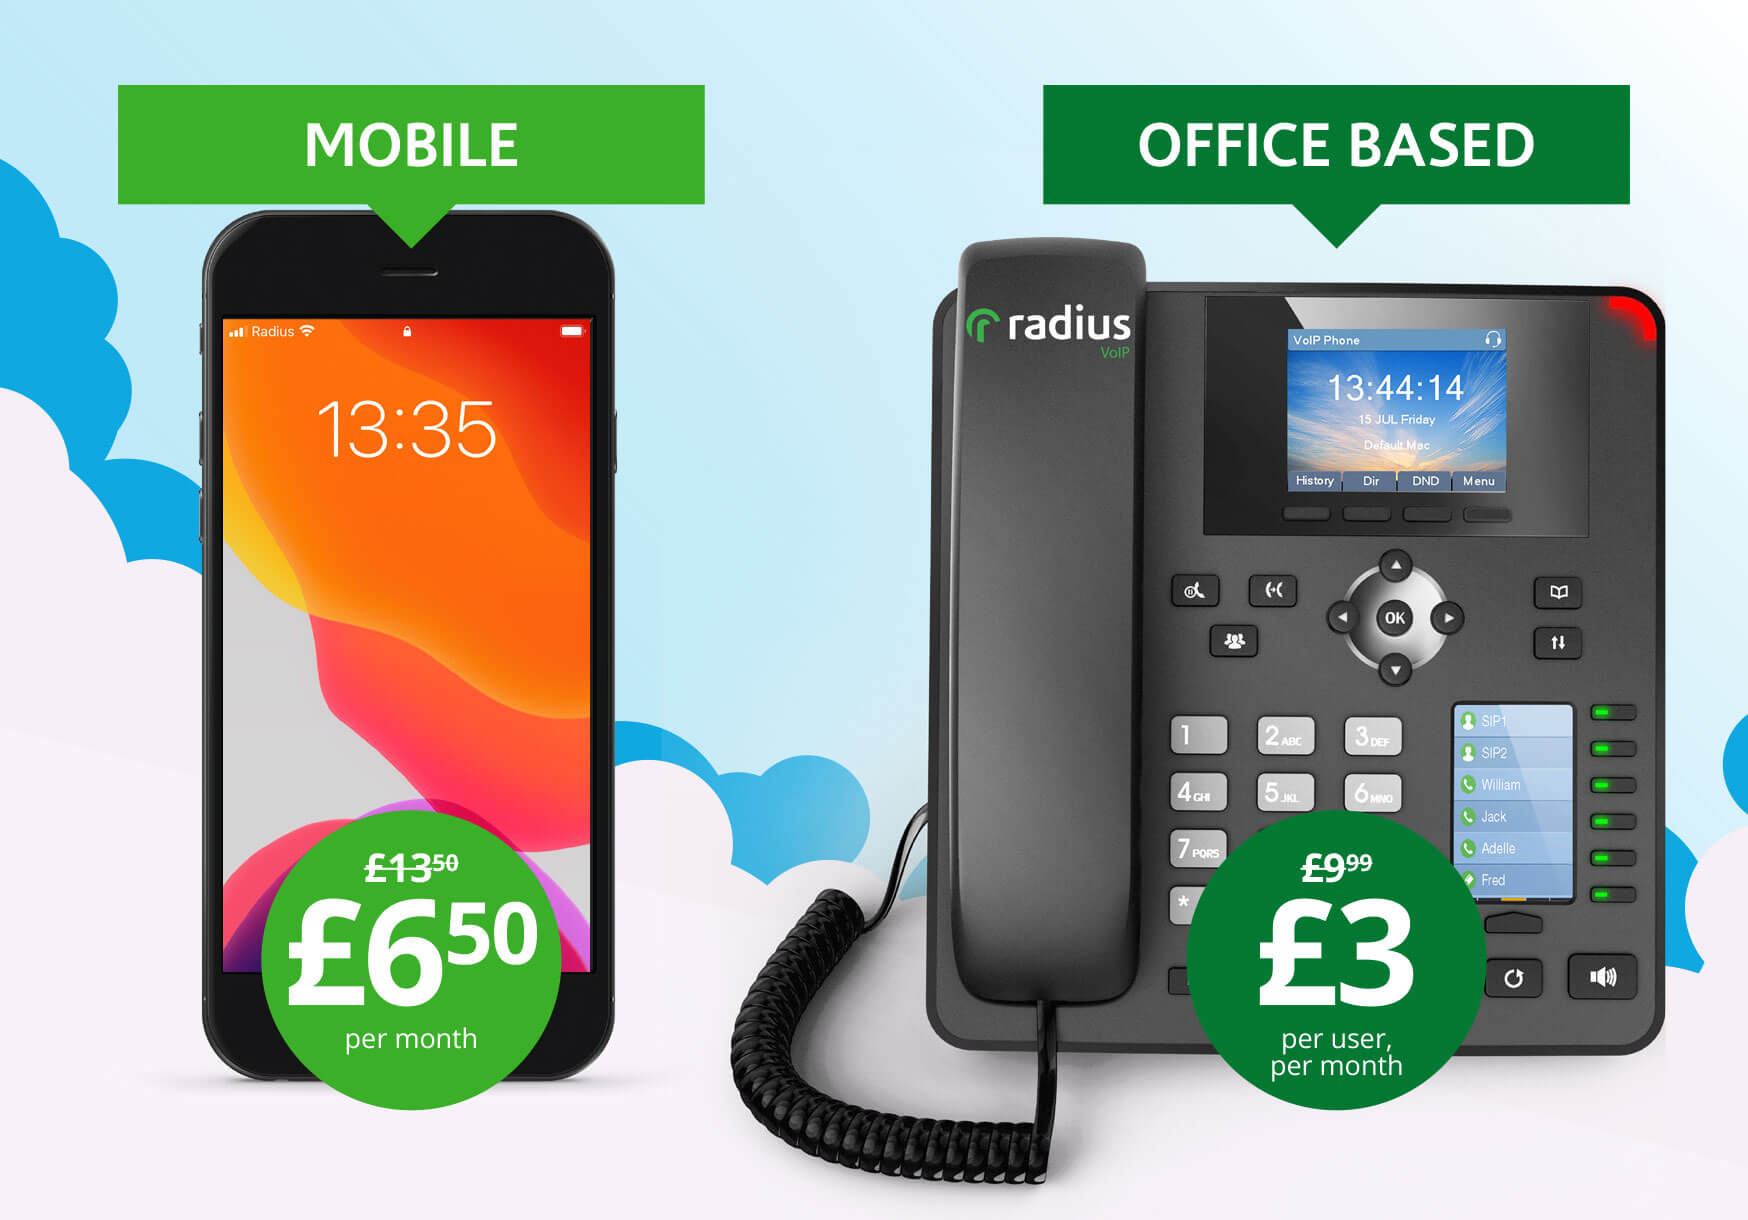 Mobile - £6.50 per month. Office based - £3 per user, per month